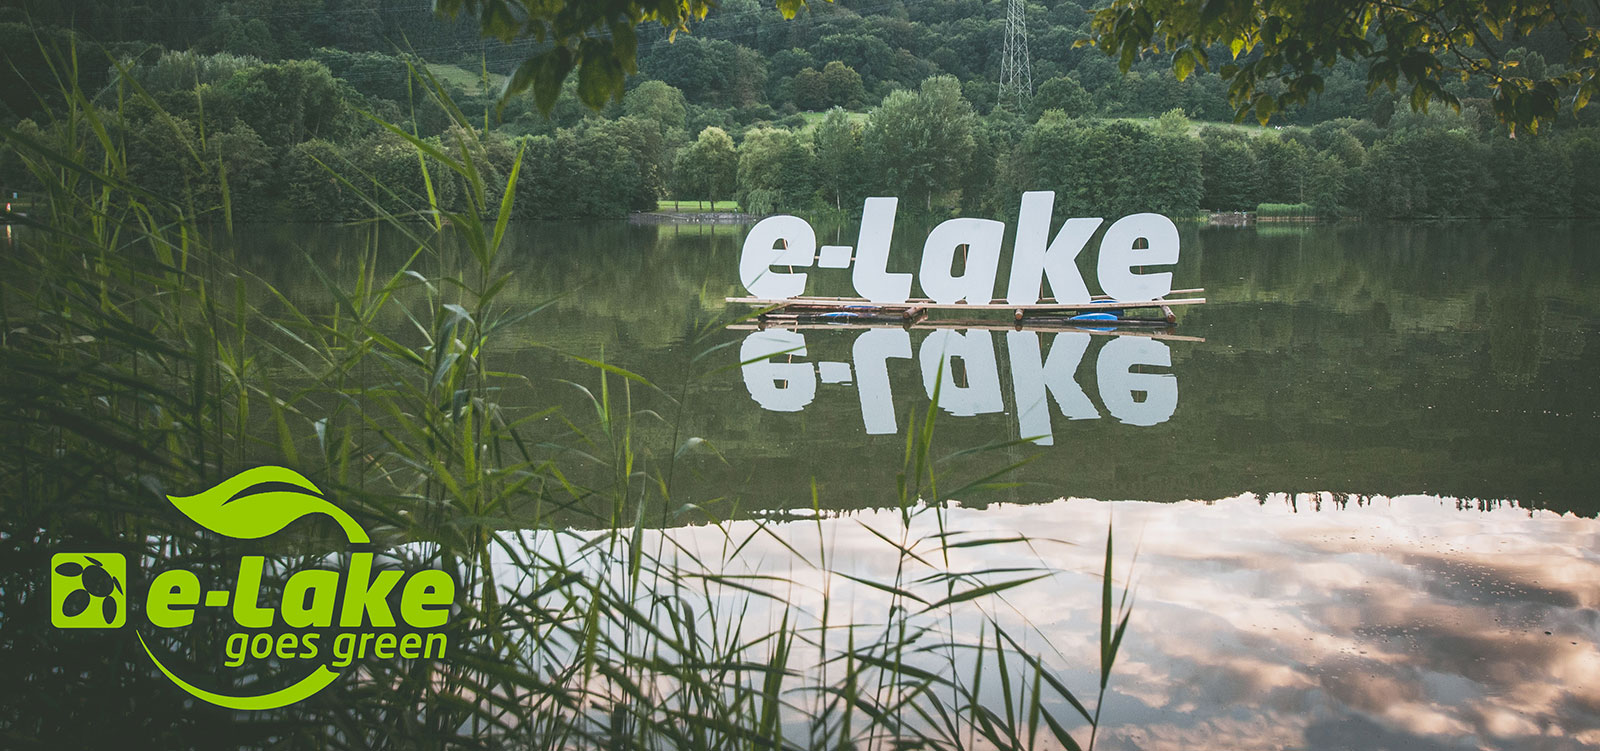 e-Lake goes green